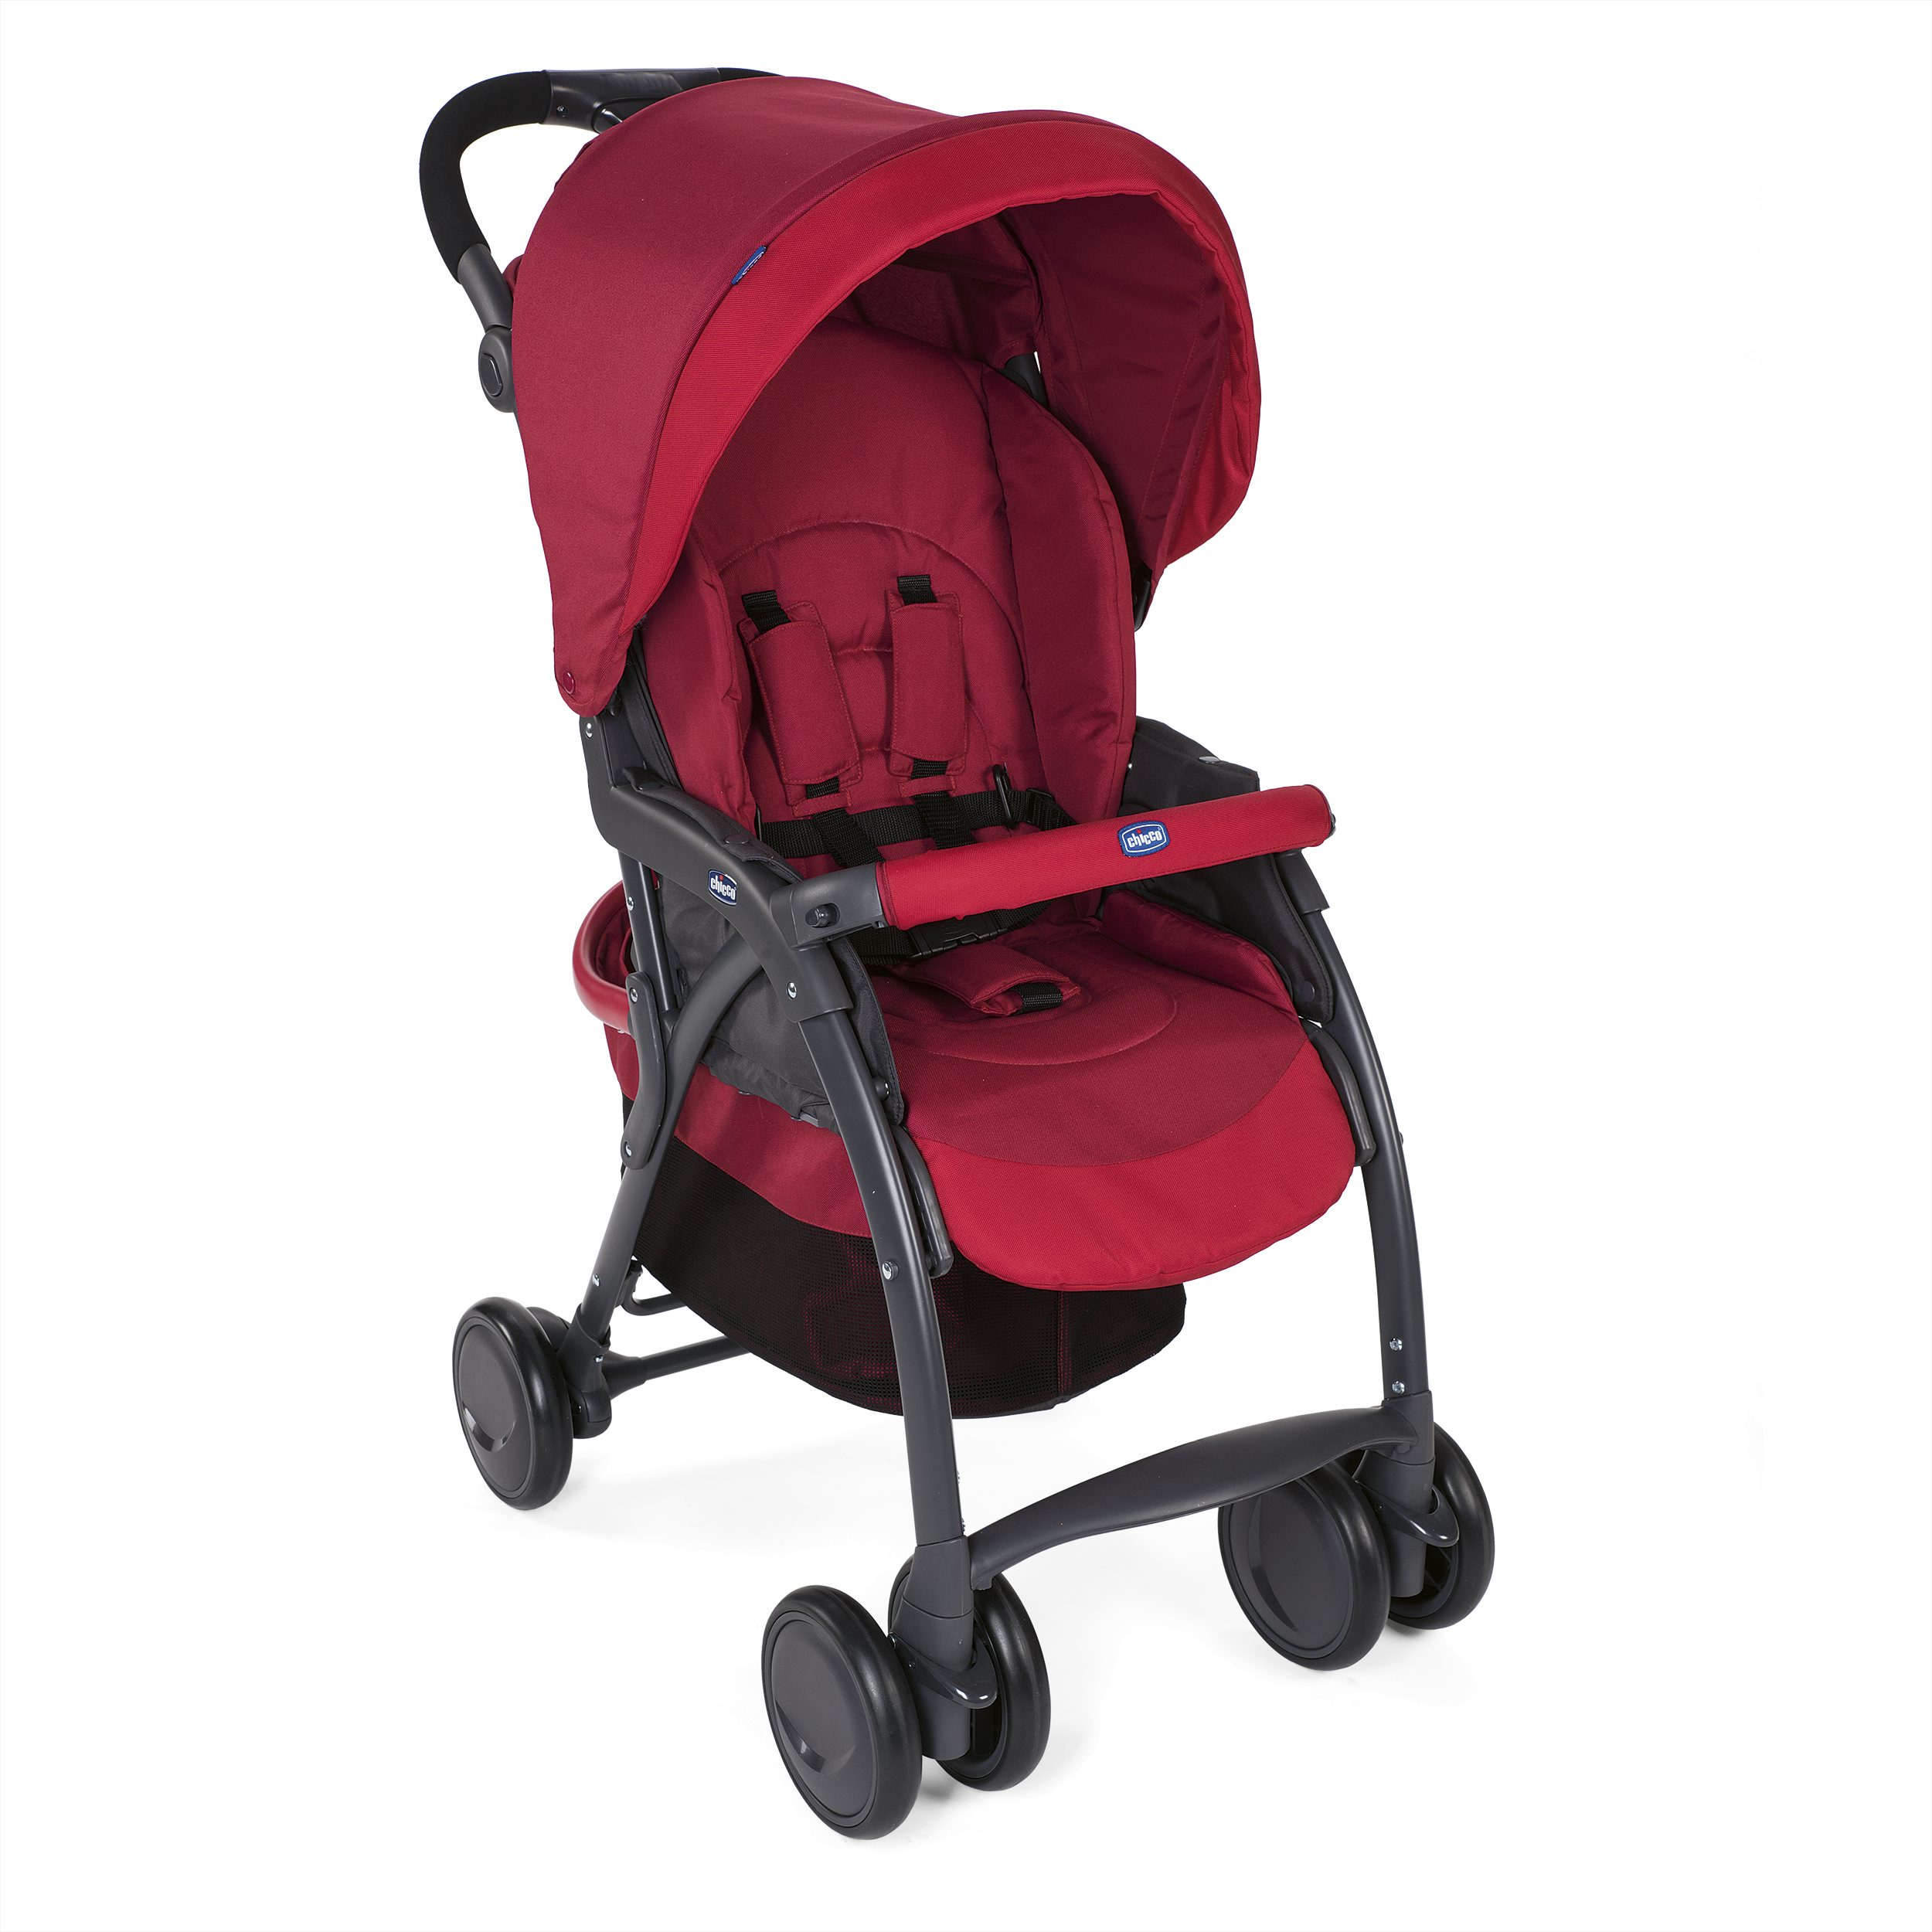 Mothercare | Chicco Simplicity Plus Baby Stroller Red